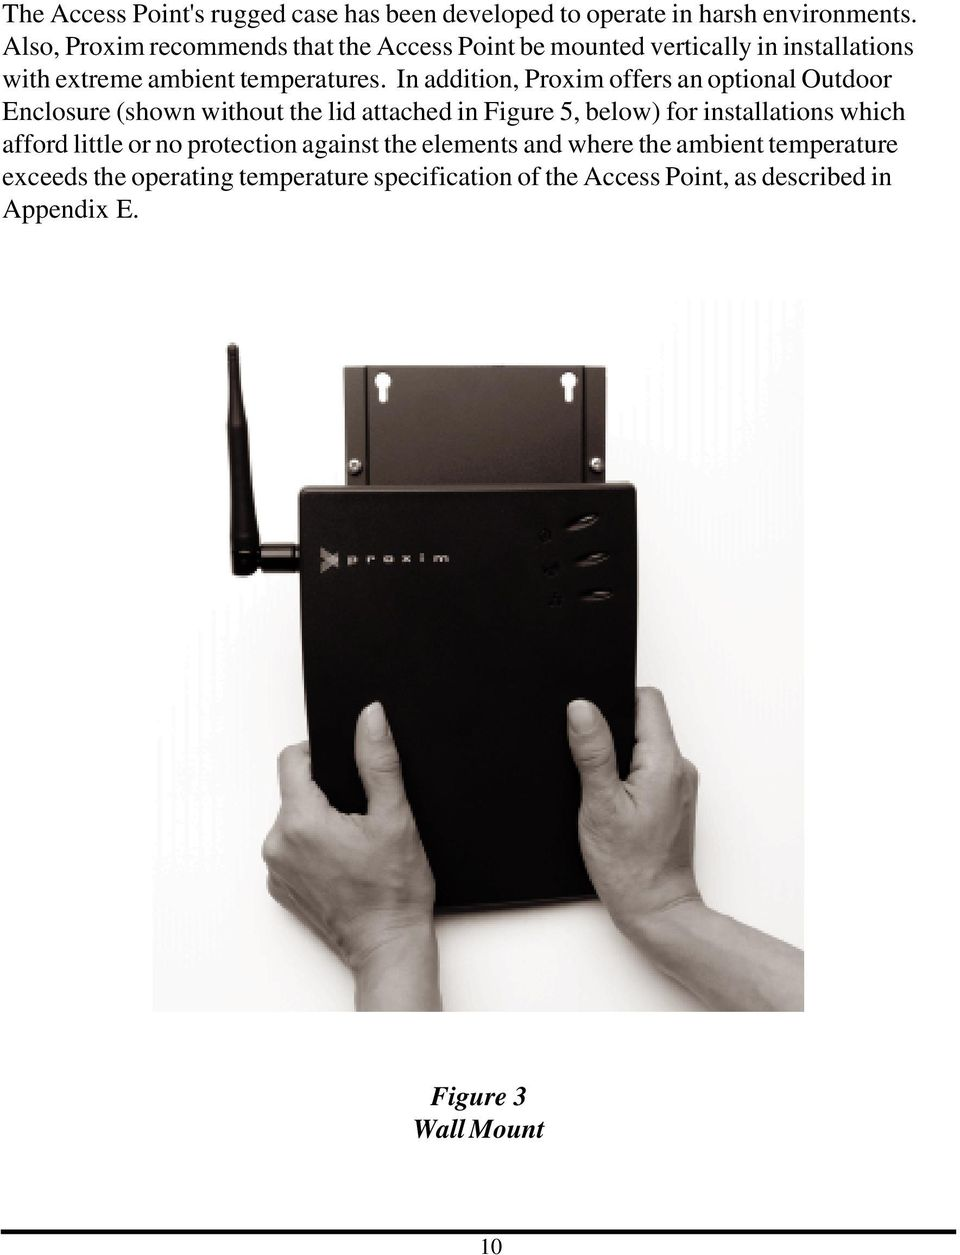 In addition, Proxim offers an optional Outdoor Enclosure (shown without the lid attached in Figure 5, below) for installations which